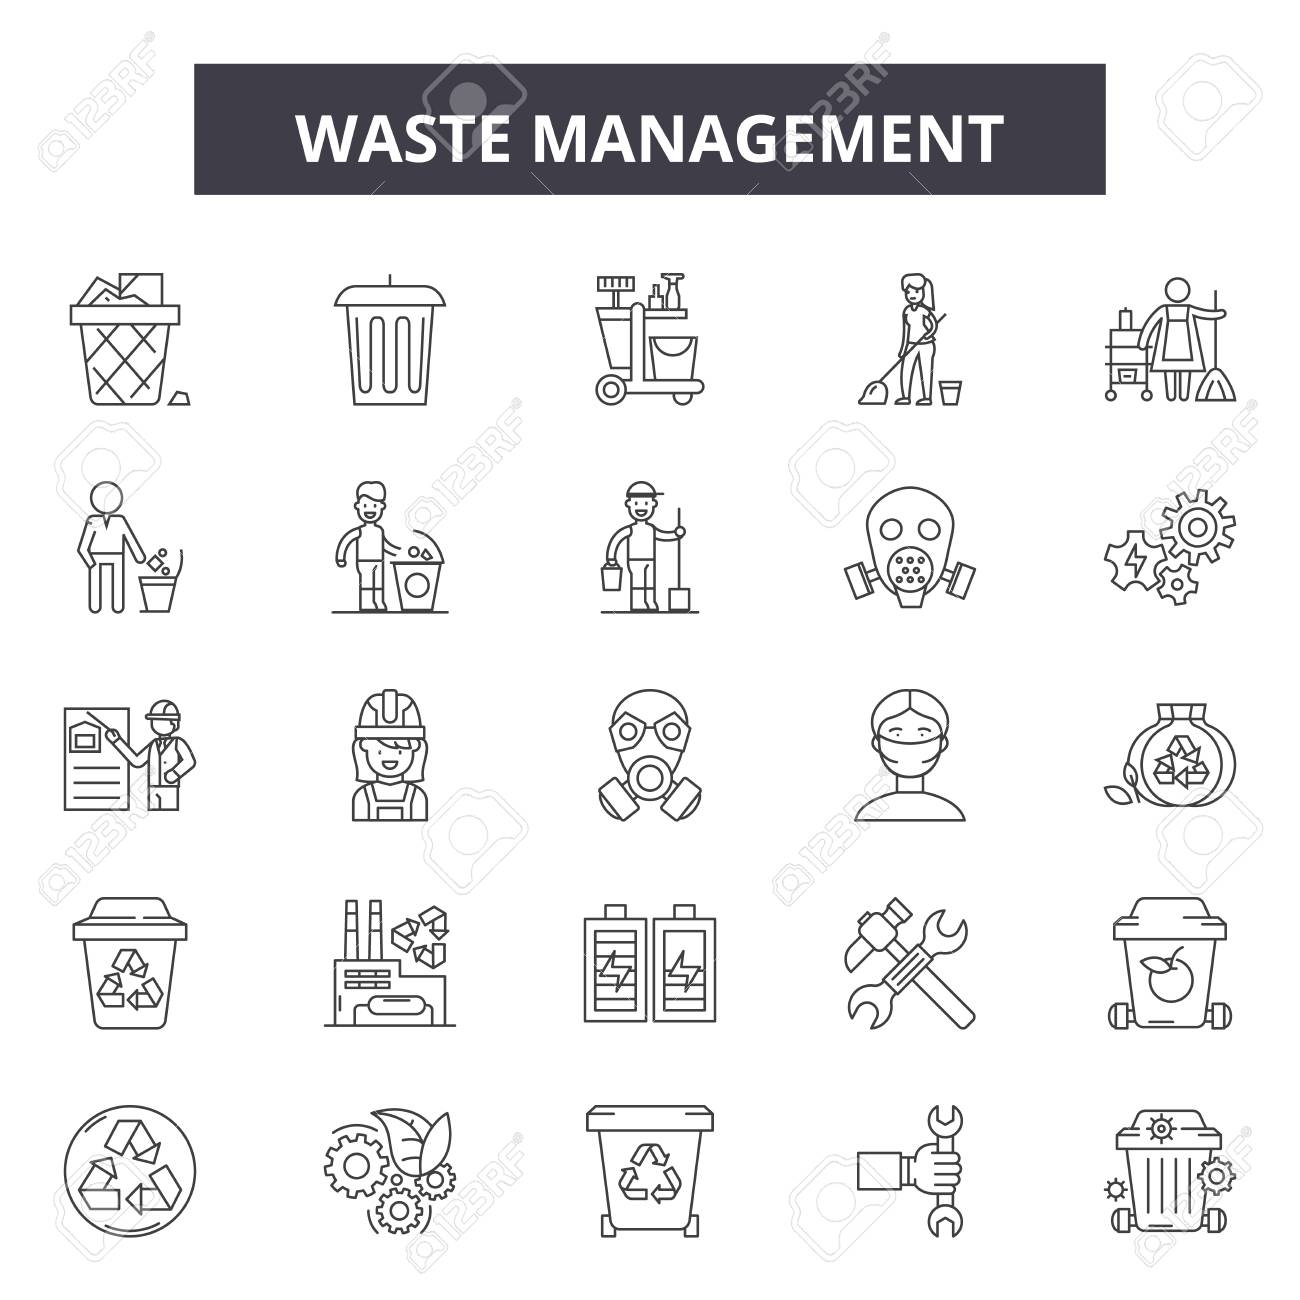 Waste management line icons, signs set, vector. Waste management outline concept illustration: waste,recycle,ecology,recycling,green,plastic,paper - 123516506